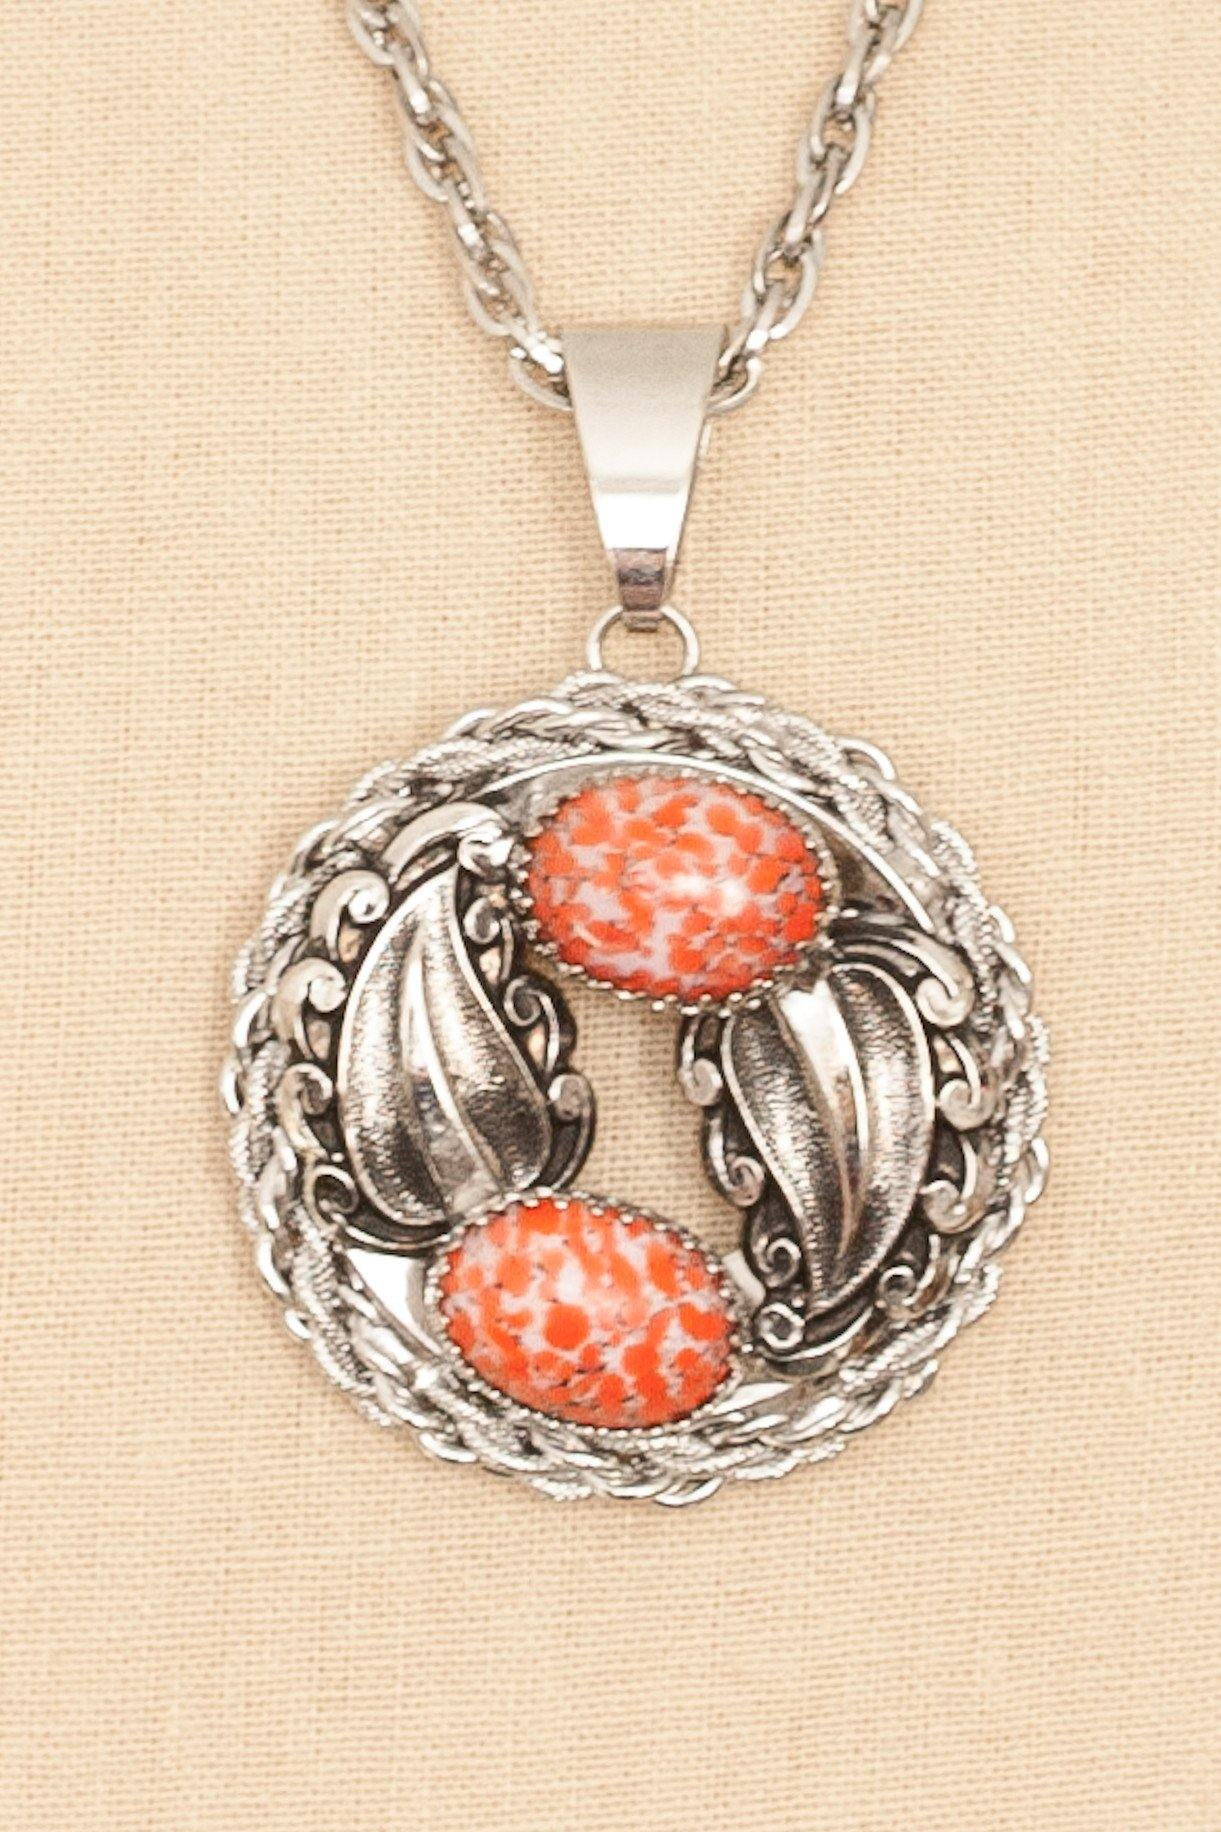 70's__Vintage__Coral Disc Pendant Necklace